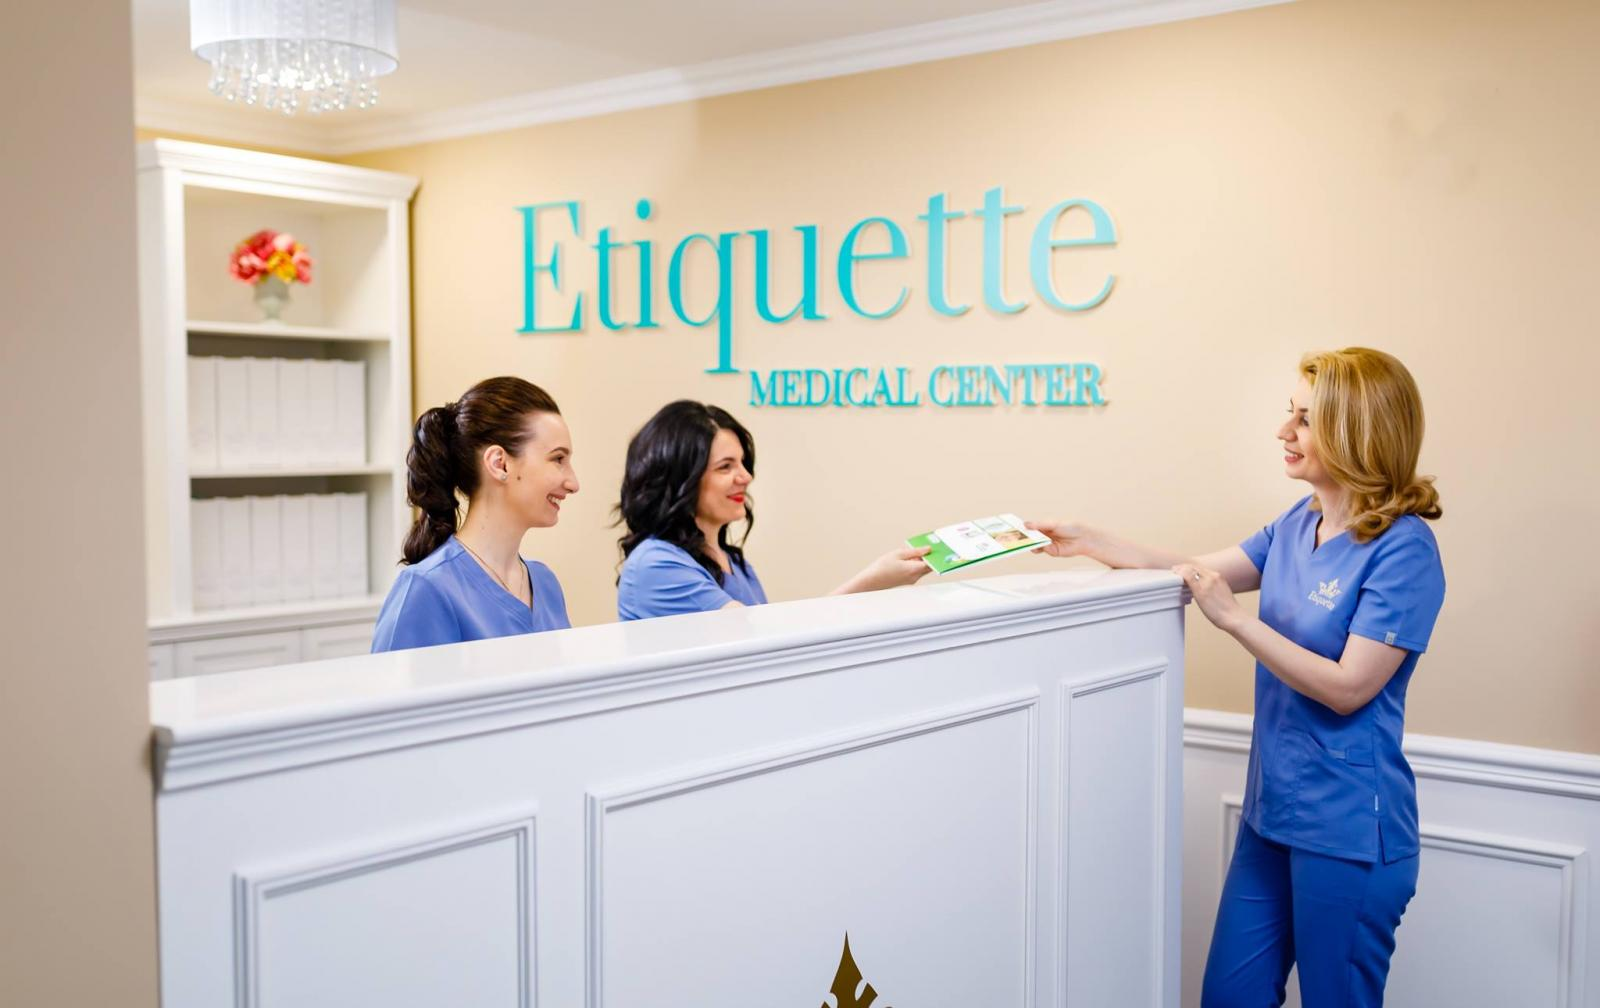 etiquette-medical-center-o-clinica-de-top-inaugurata-miercuri-la-t